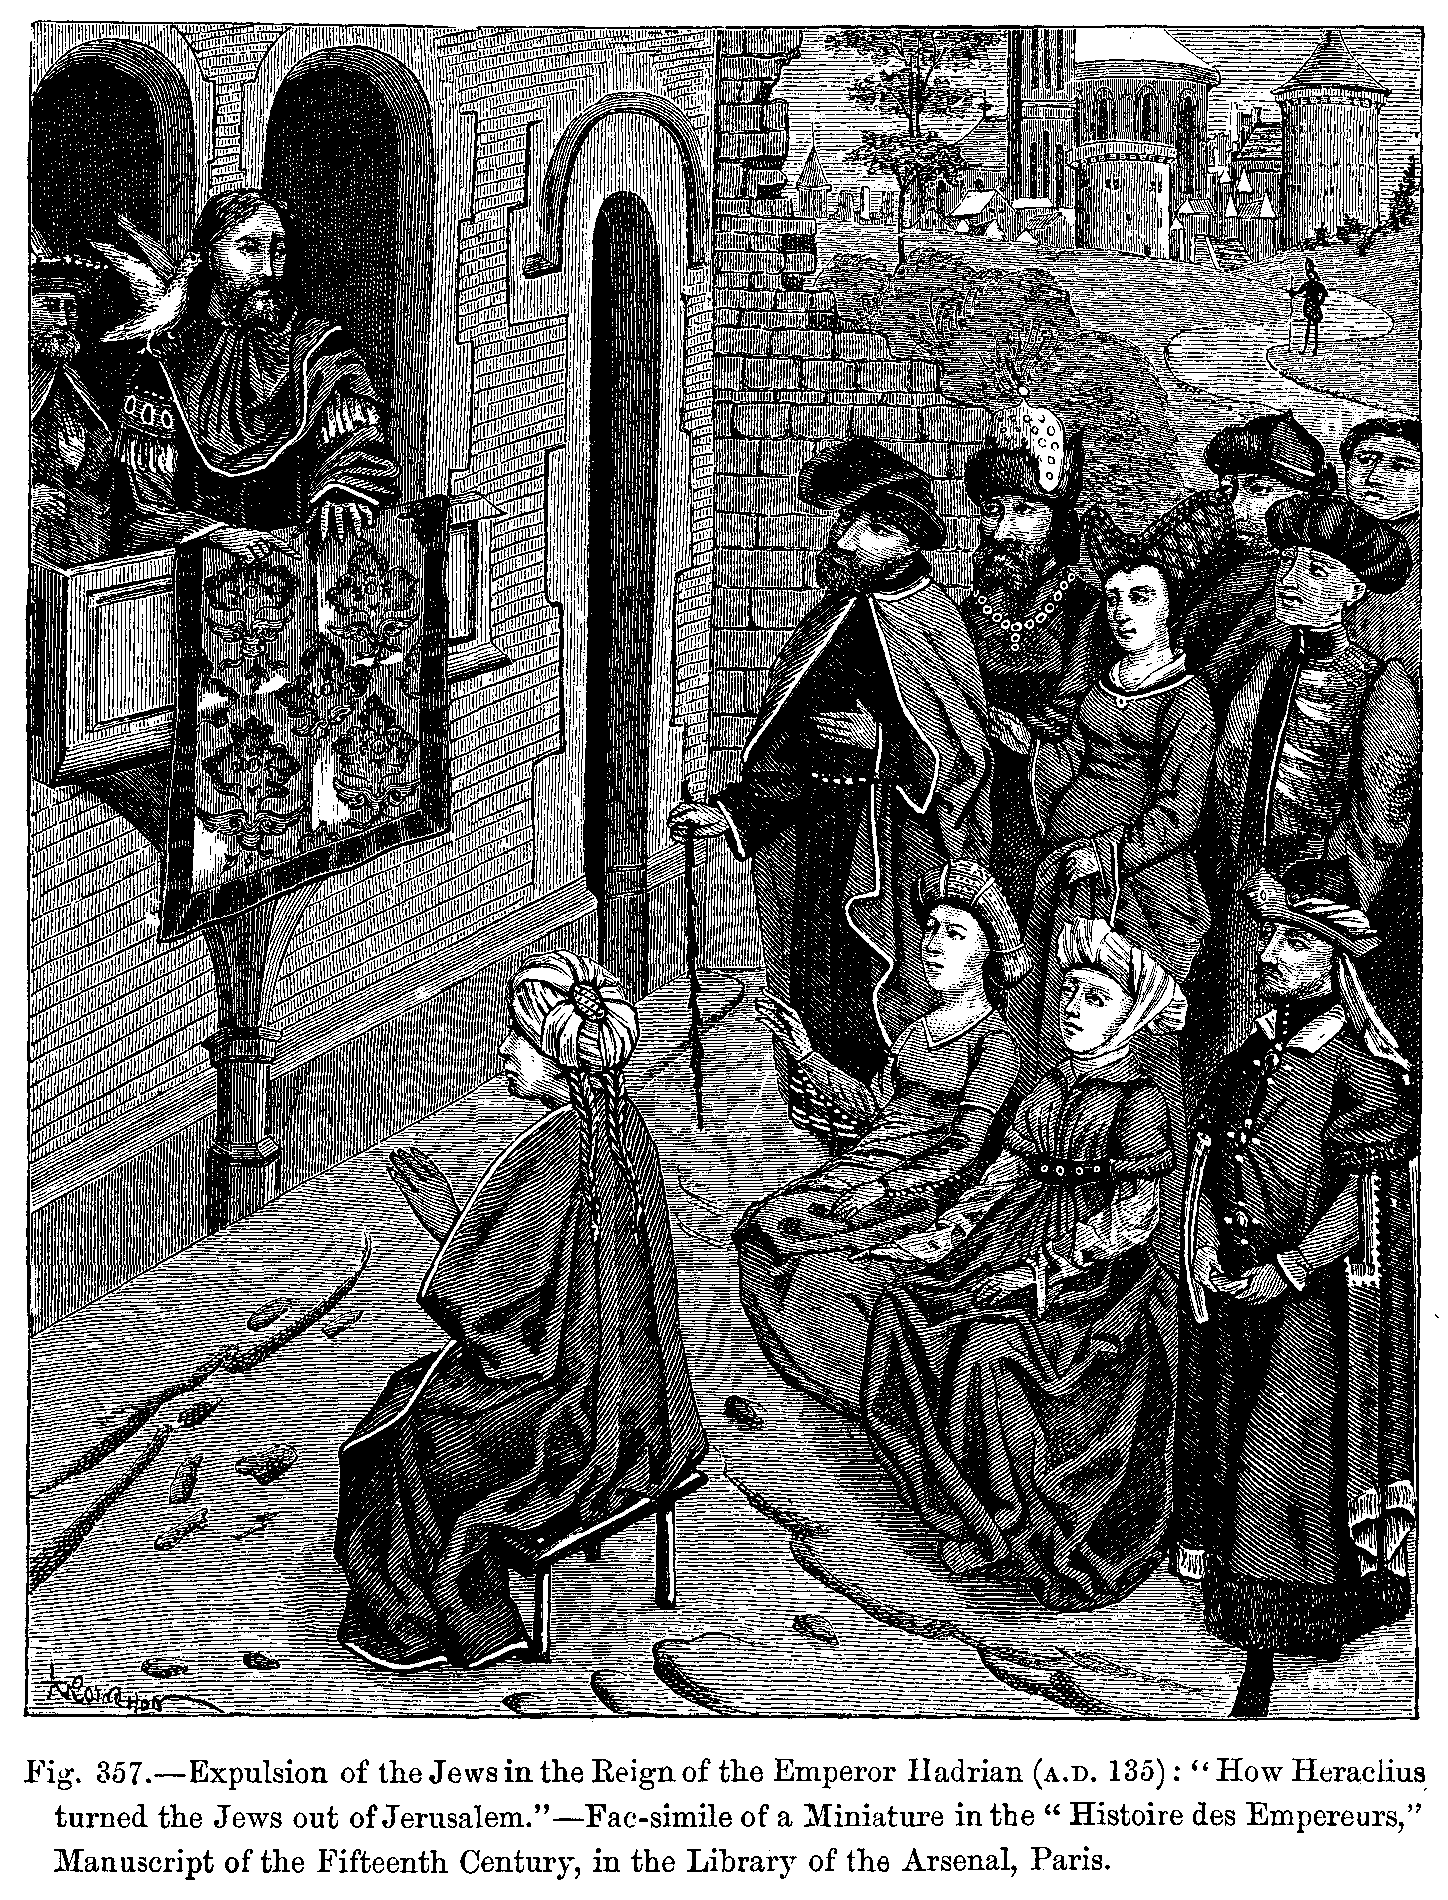 Expulsion of the Jews in the Reign of the Emperor Hadrian CE 135